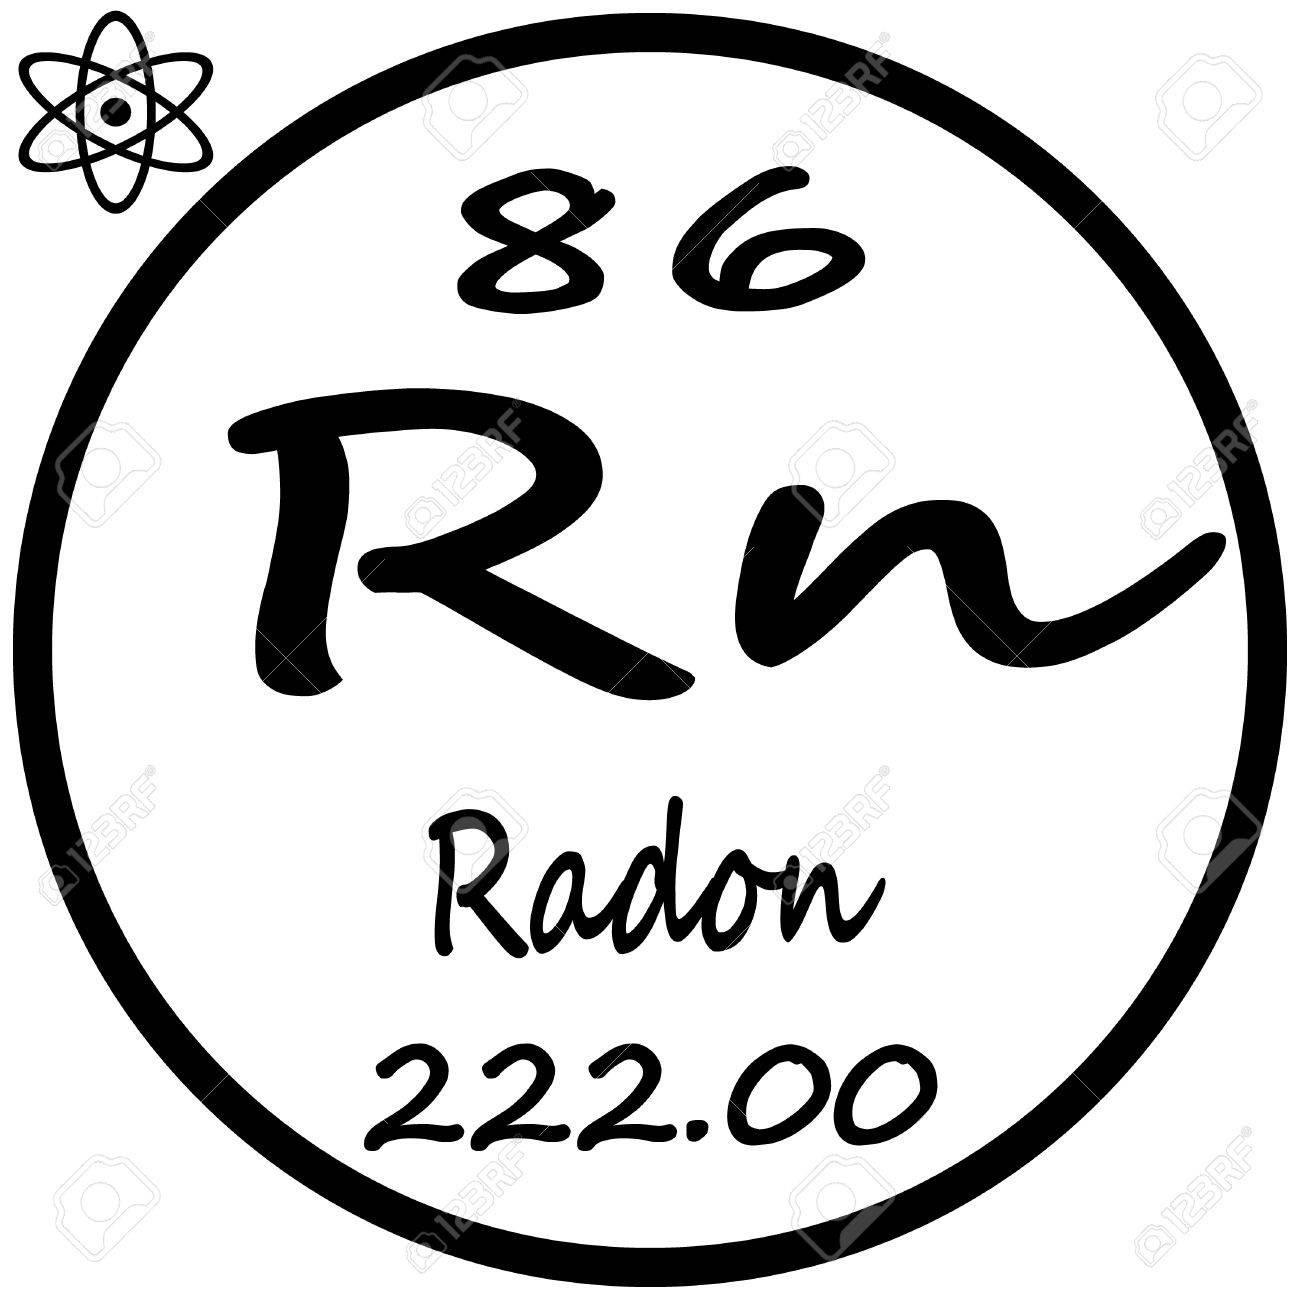 Radon periodic table facts gallery periodic table images rn element periodic table image collections periodic table images radon on periodic table image collections periodic gamestrikefo Images